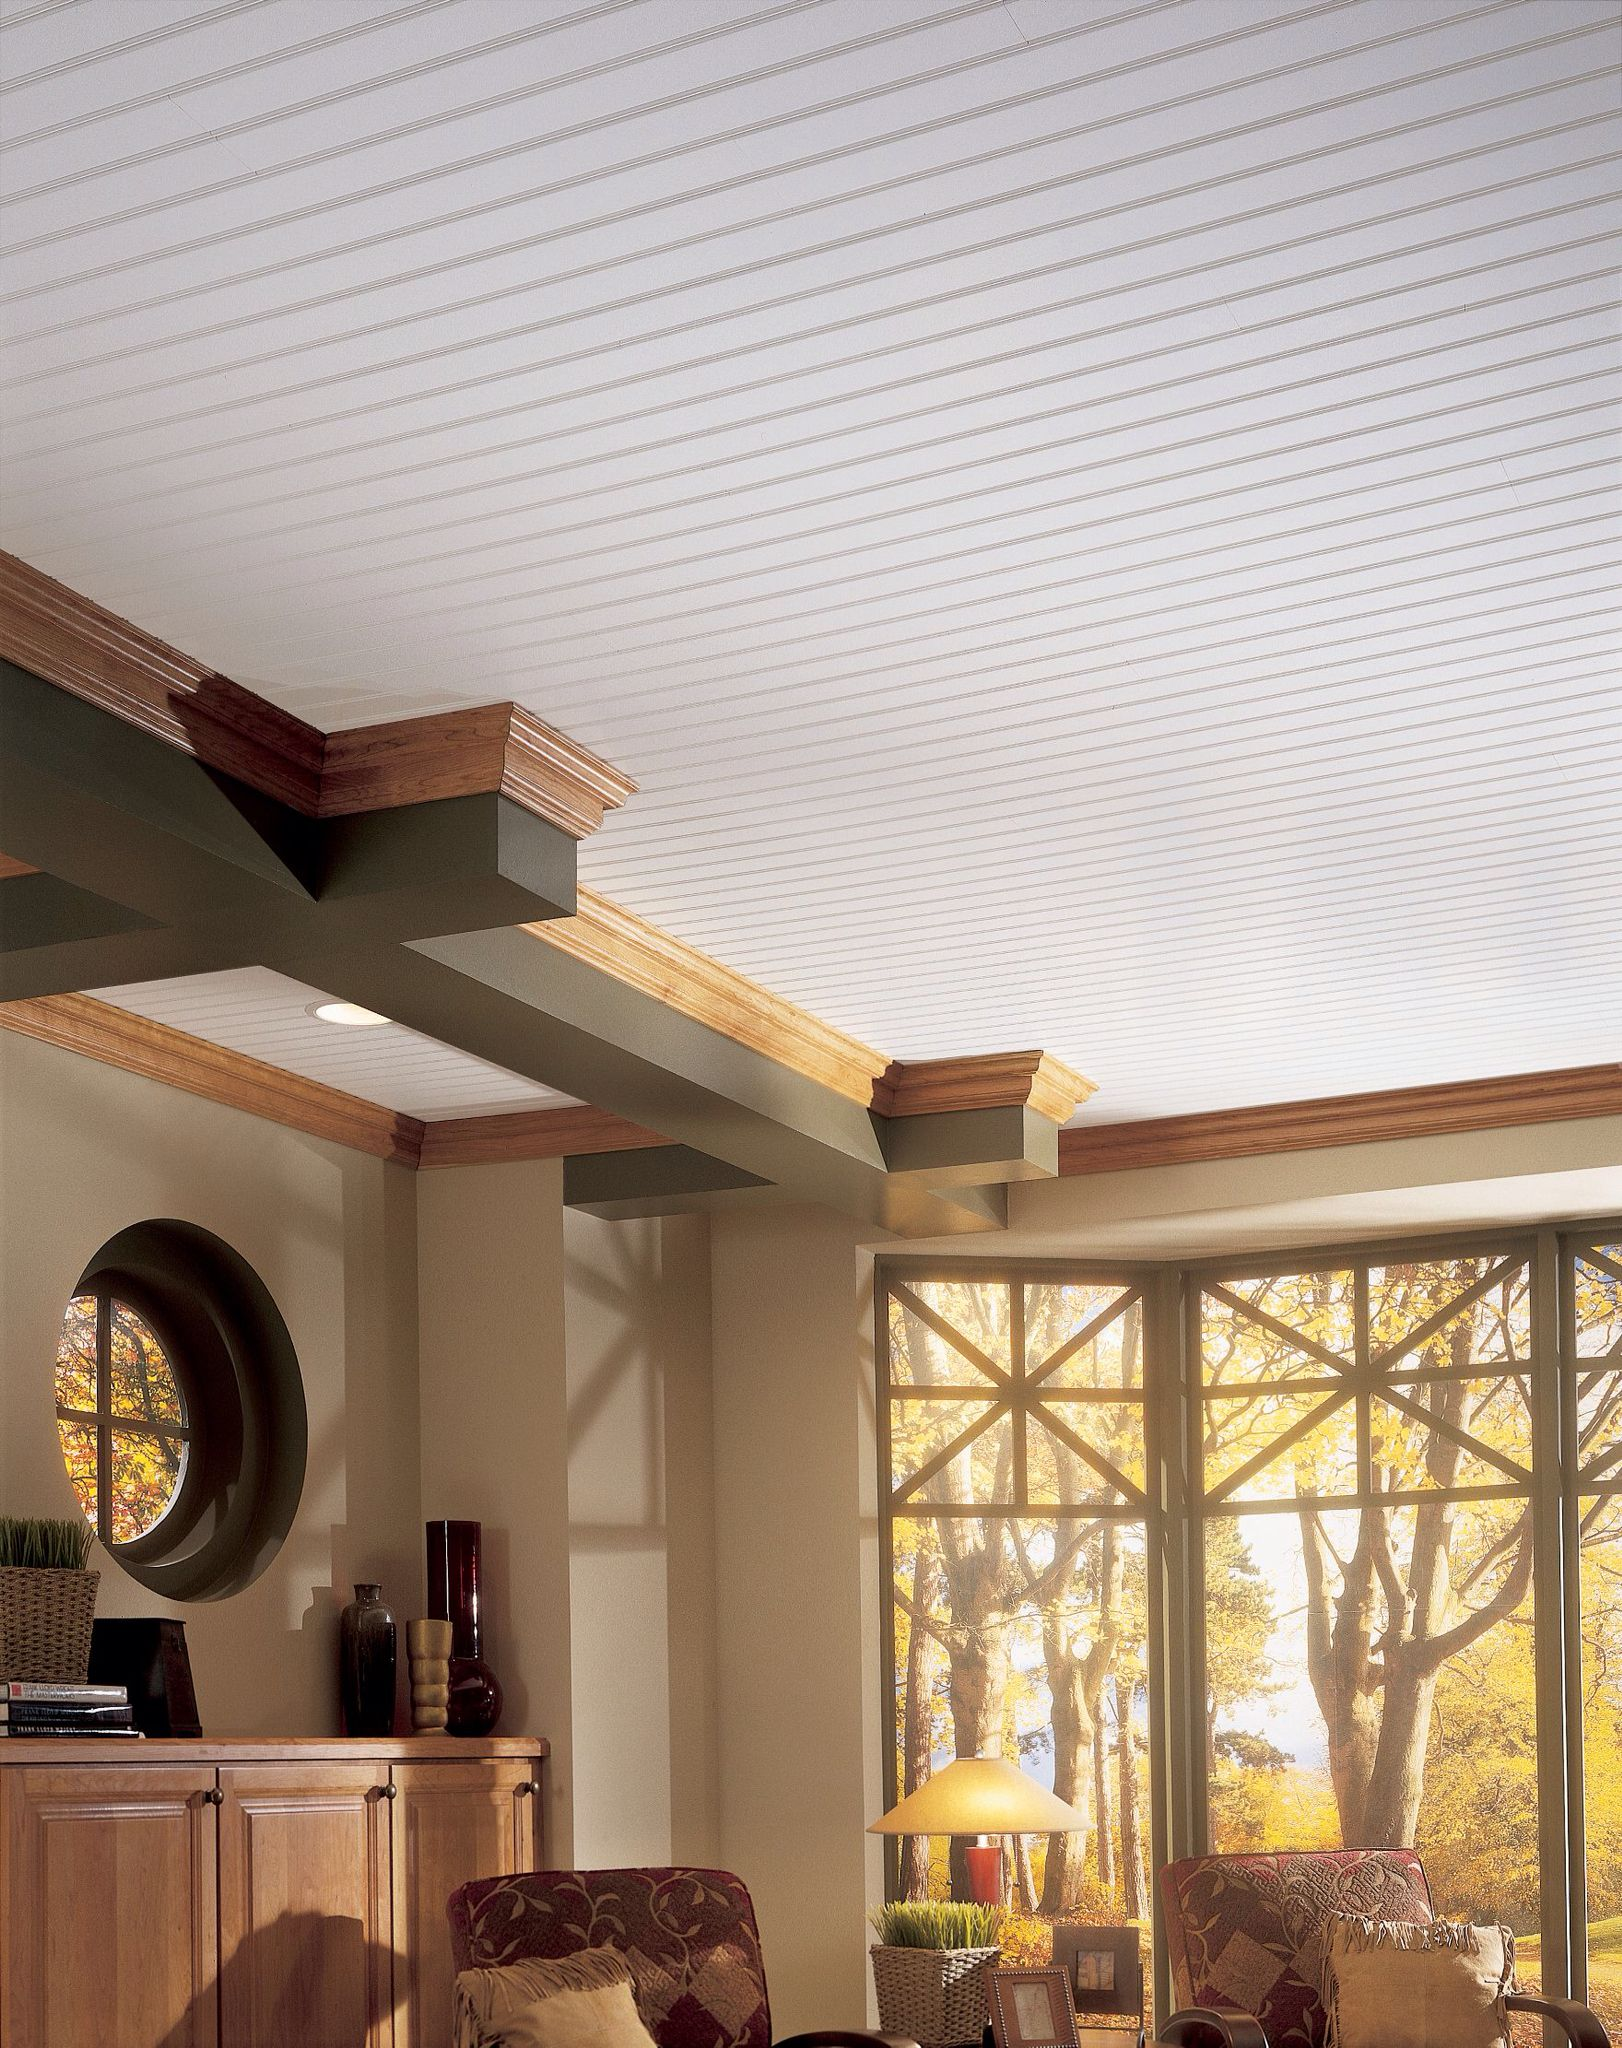 White Wood Ceiling Armstrong Ceiling Plank Ceiling Decorative Ceiling Tile